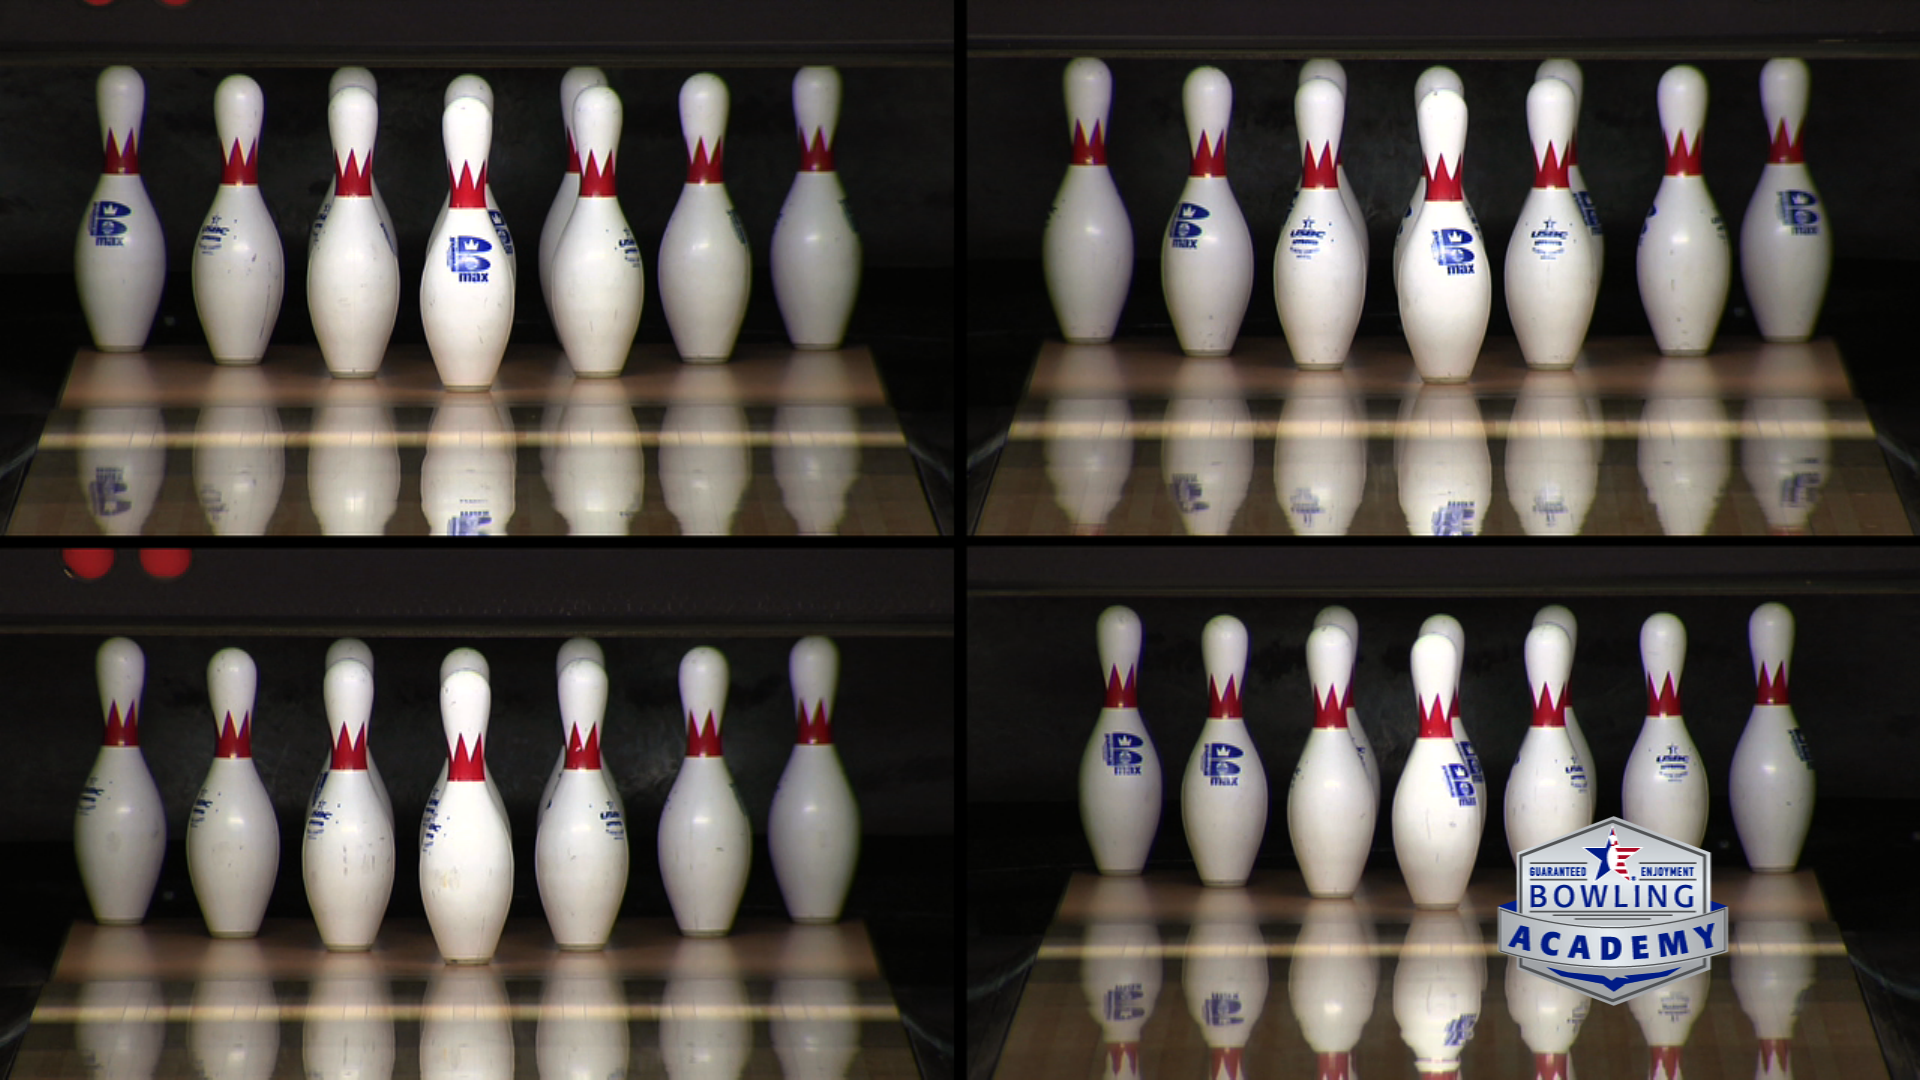 Diagnosing a Bad Bowling Pin Rack